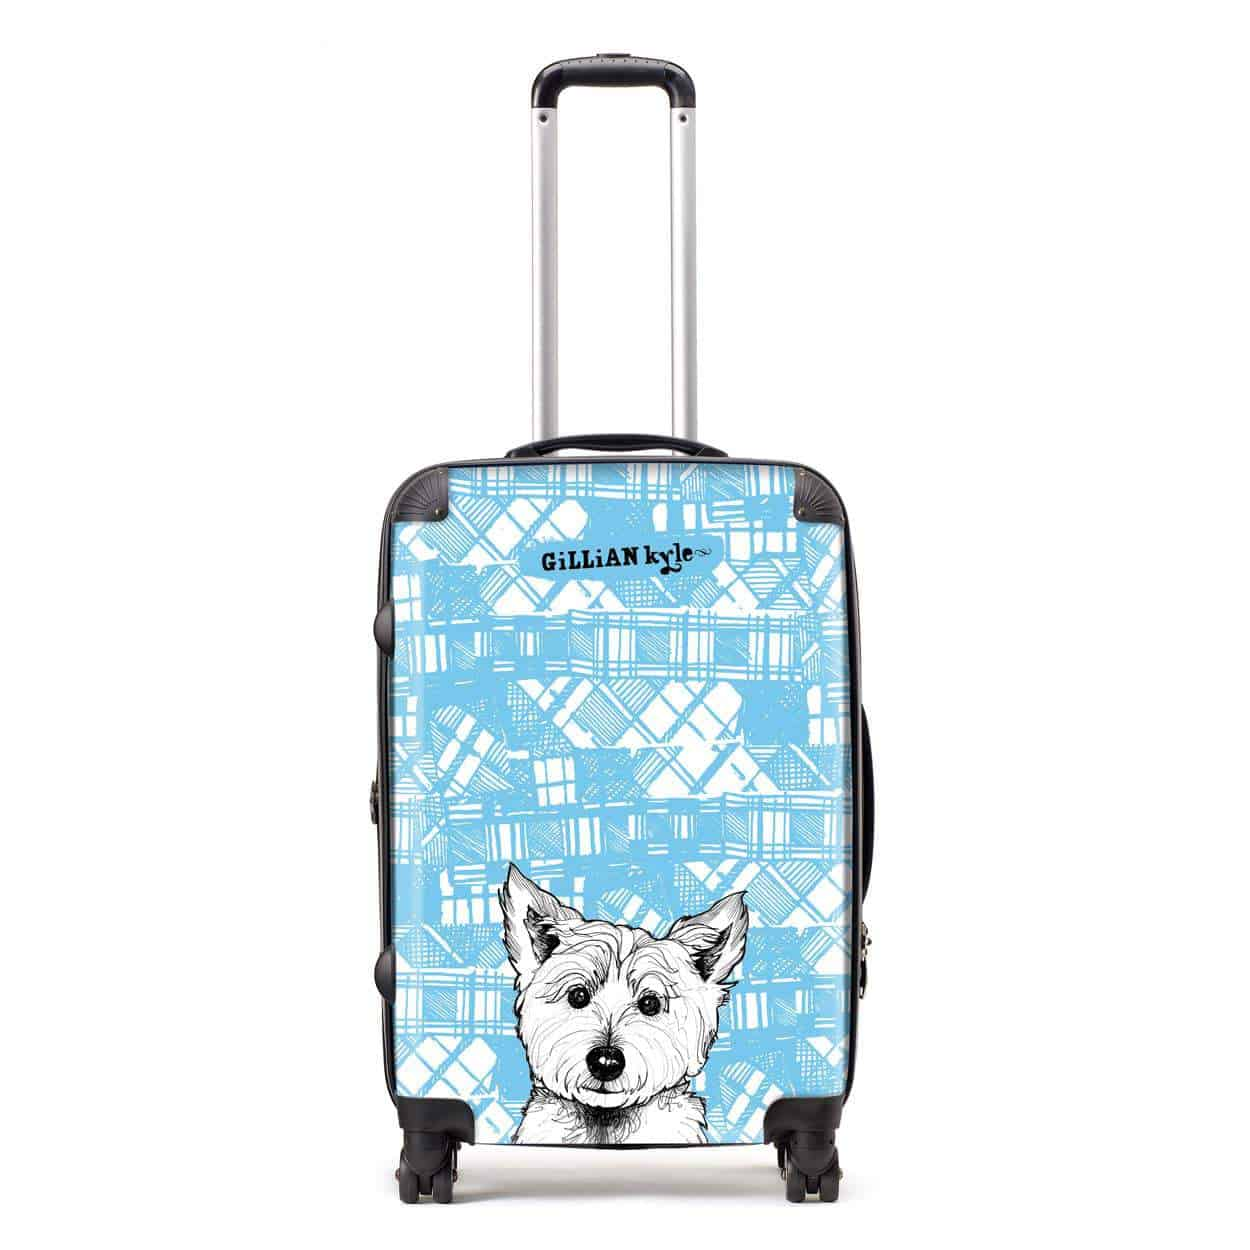 Scottish suitcase with tartan westie print by gillian kyle